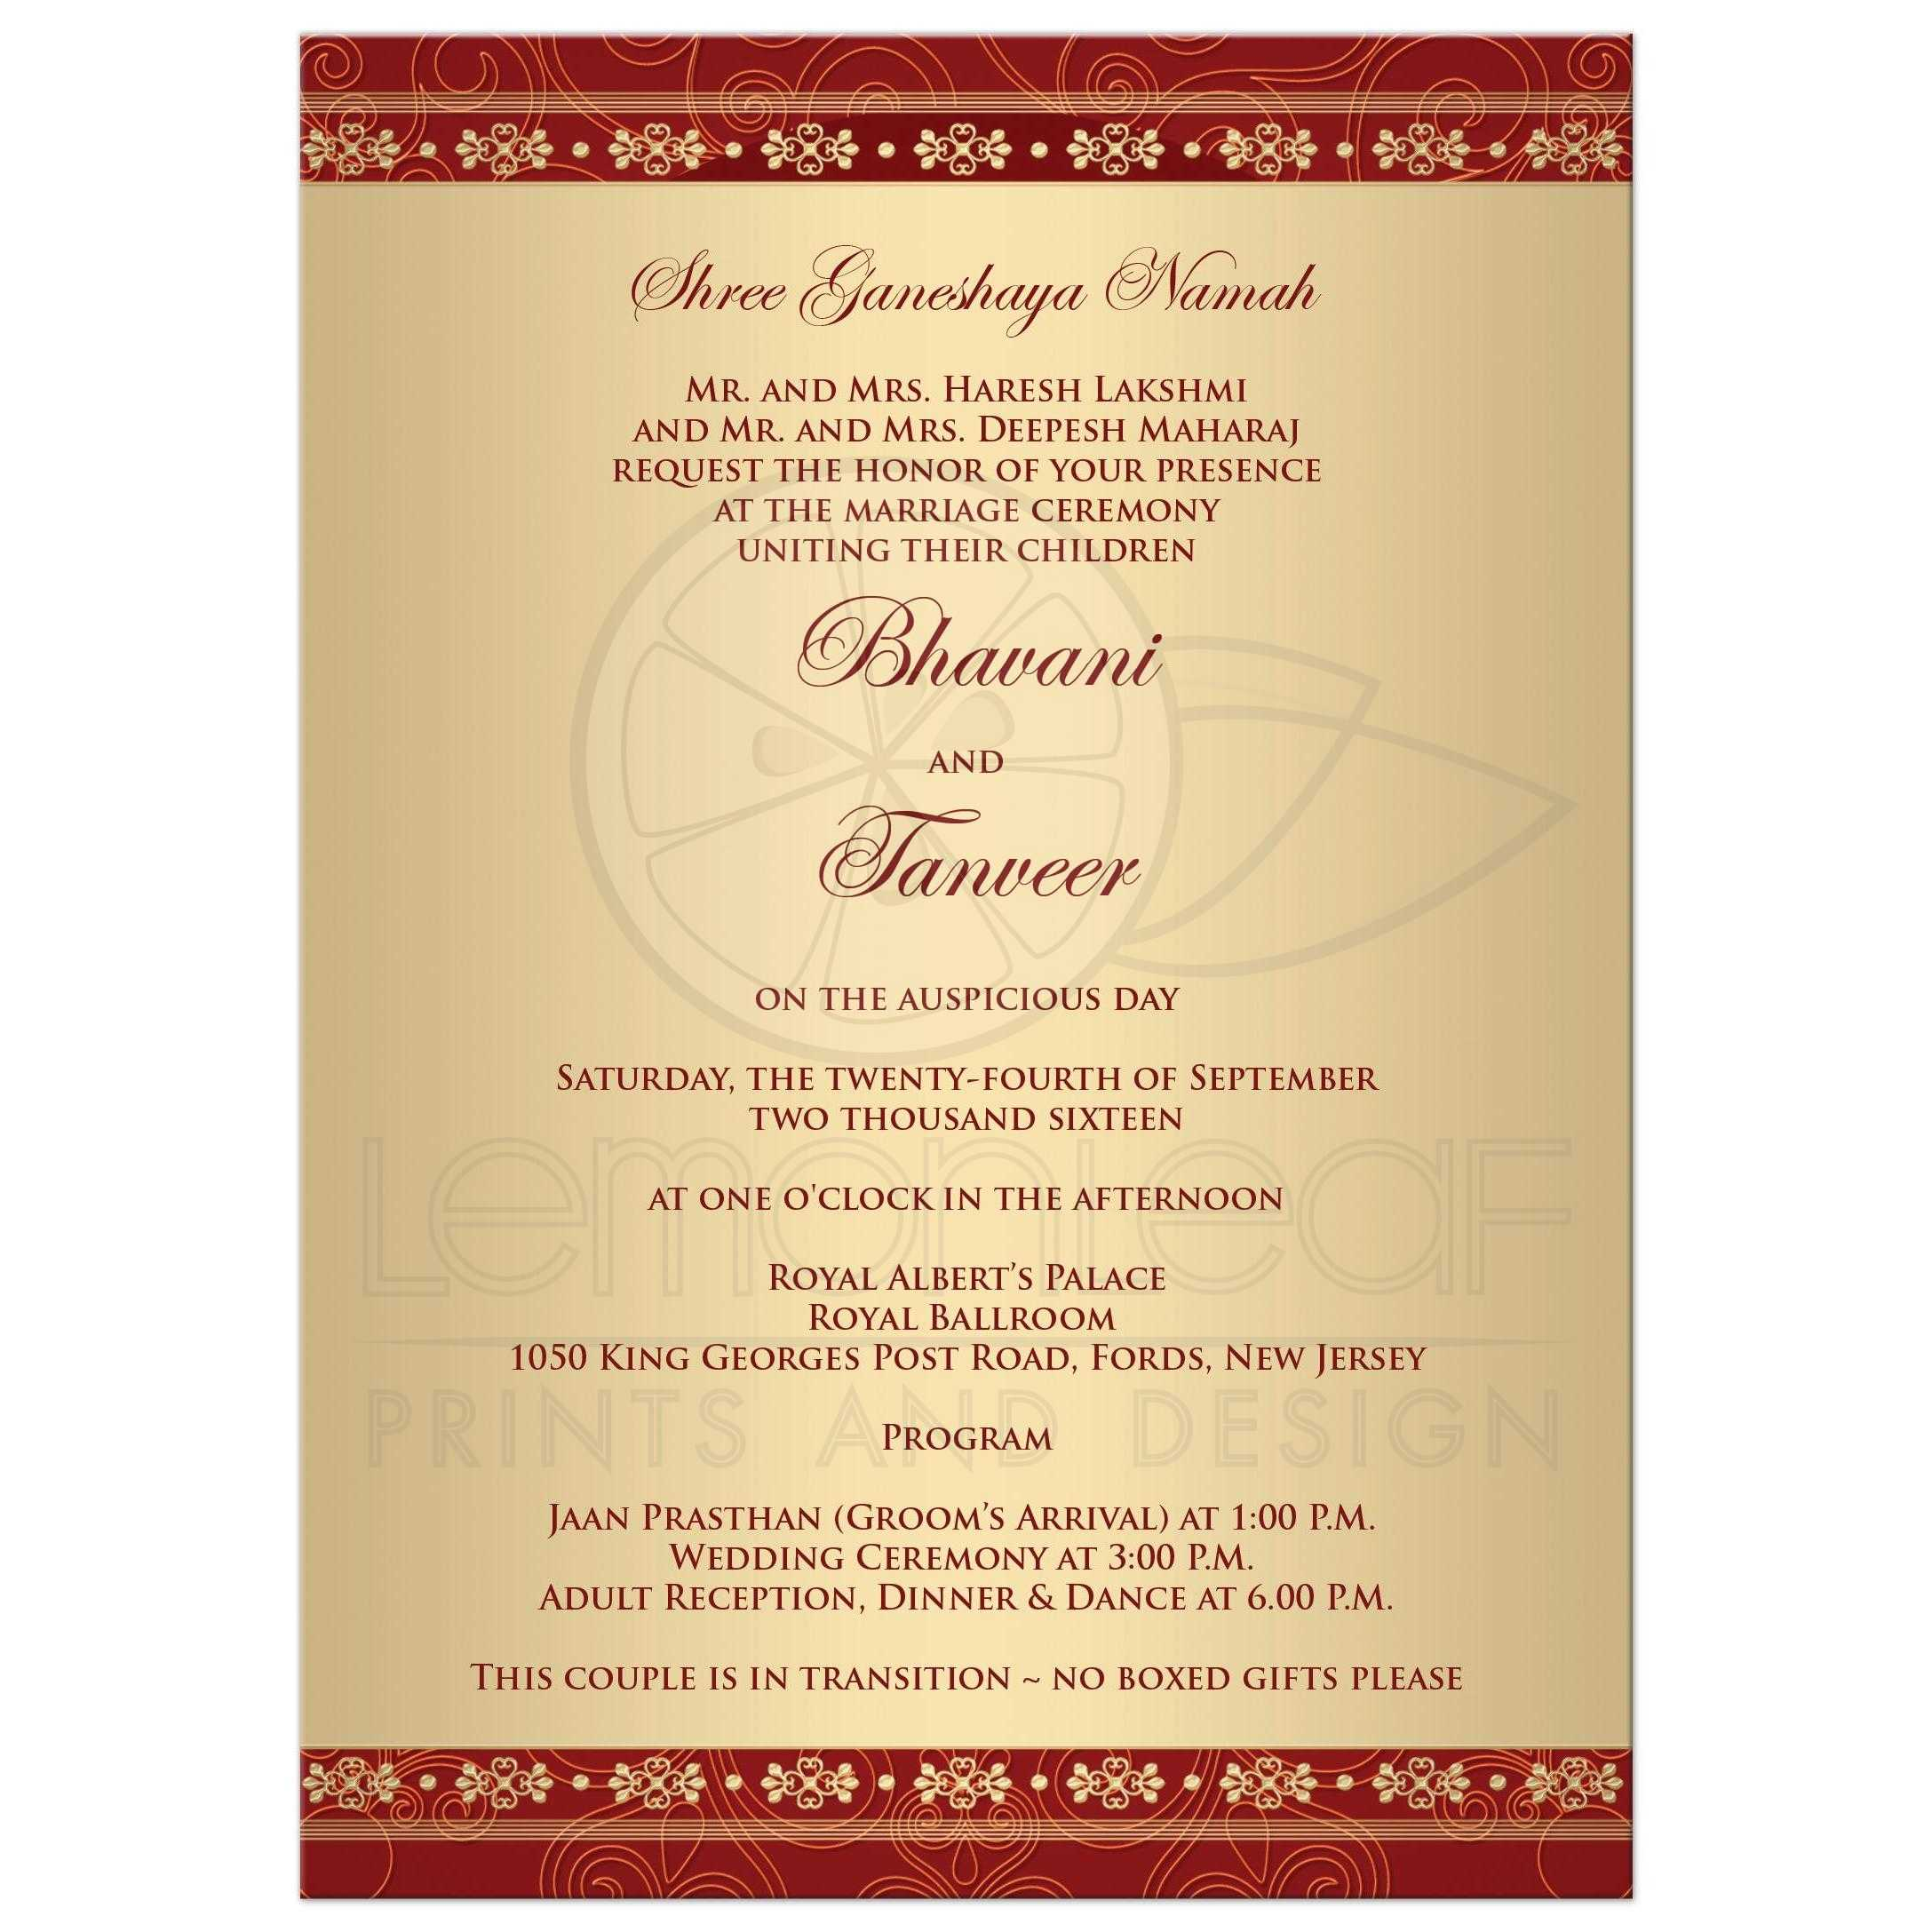 Wedding invitation hindu ganesh red gold scrolls stars great east indian wedding invites in red orange and gold with ganesha stopboris Choice Image